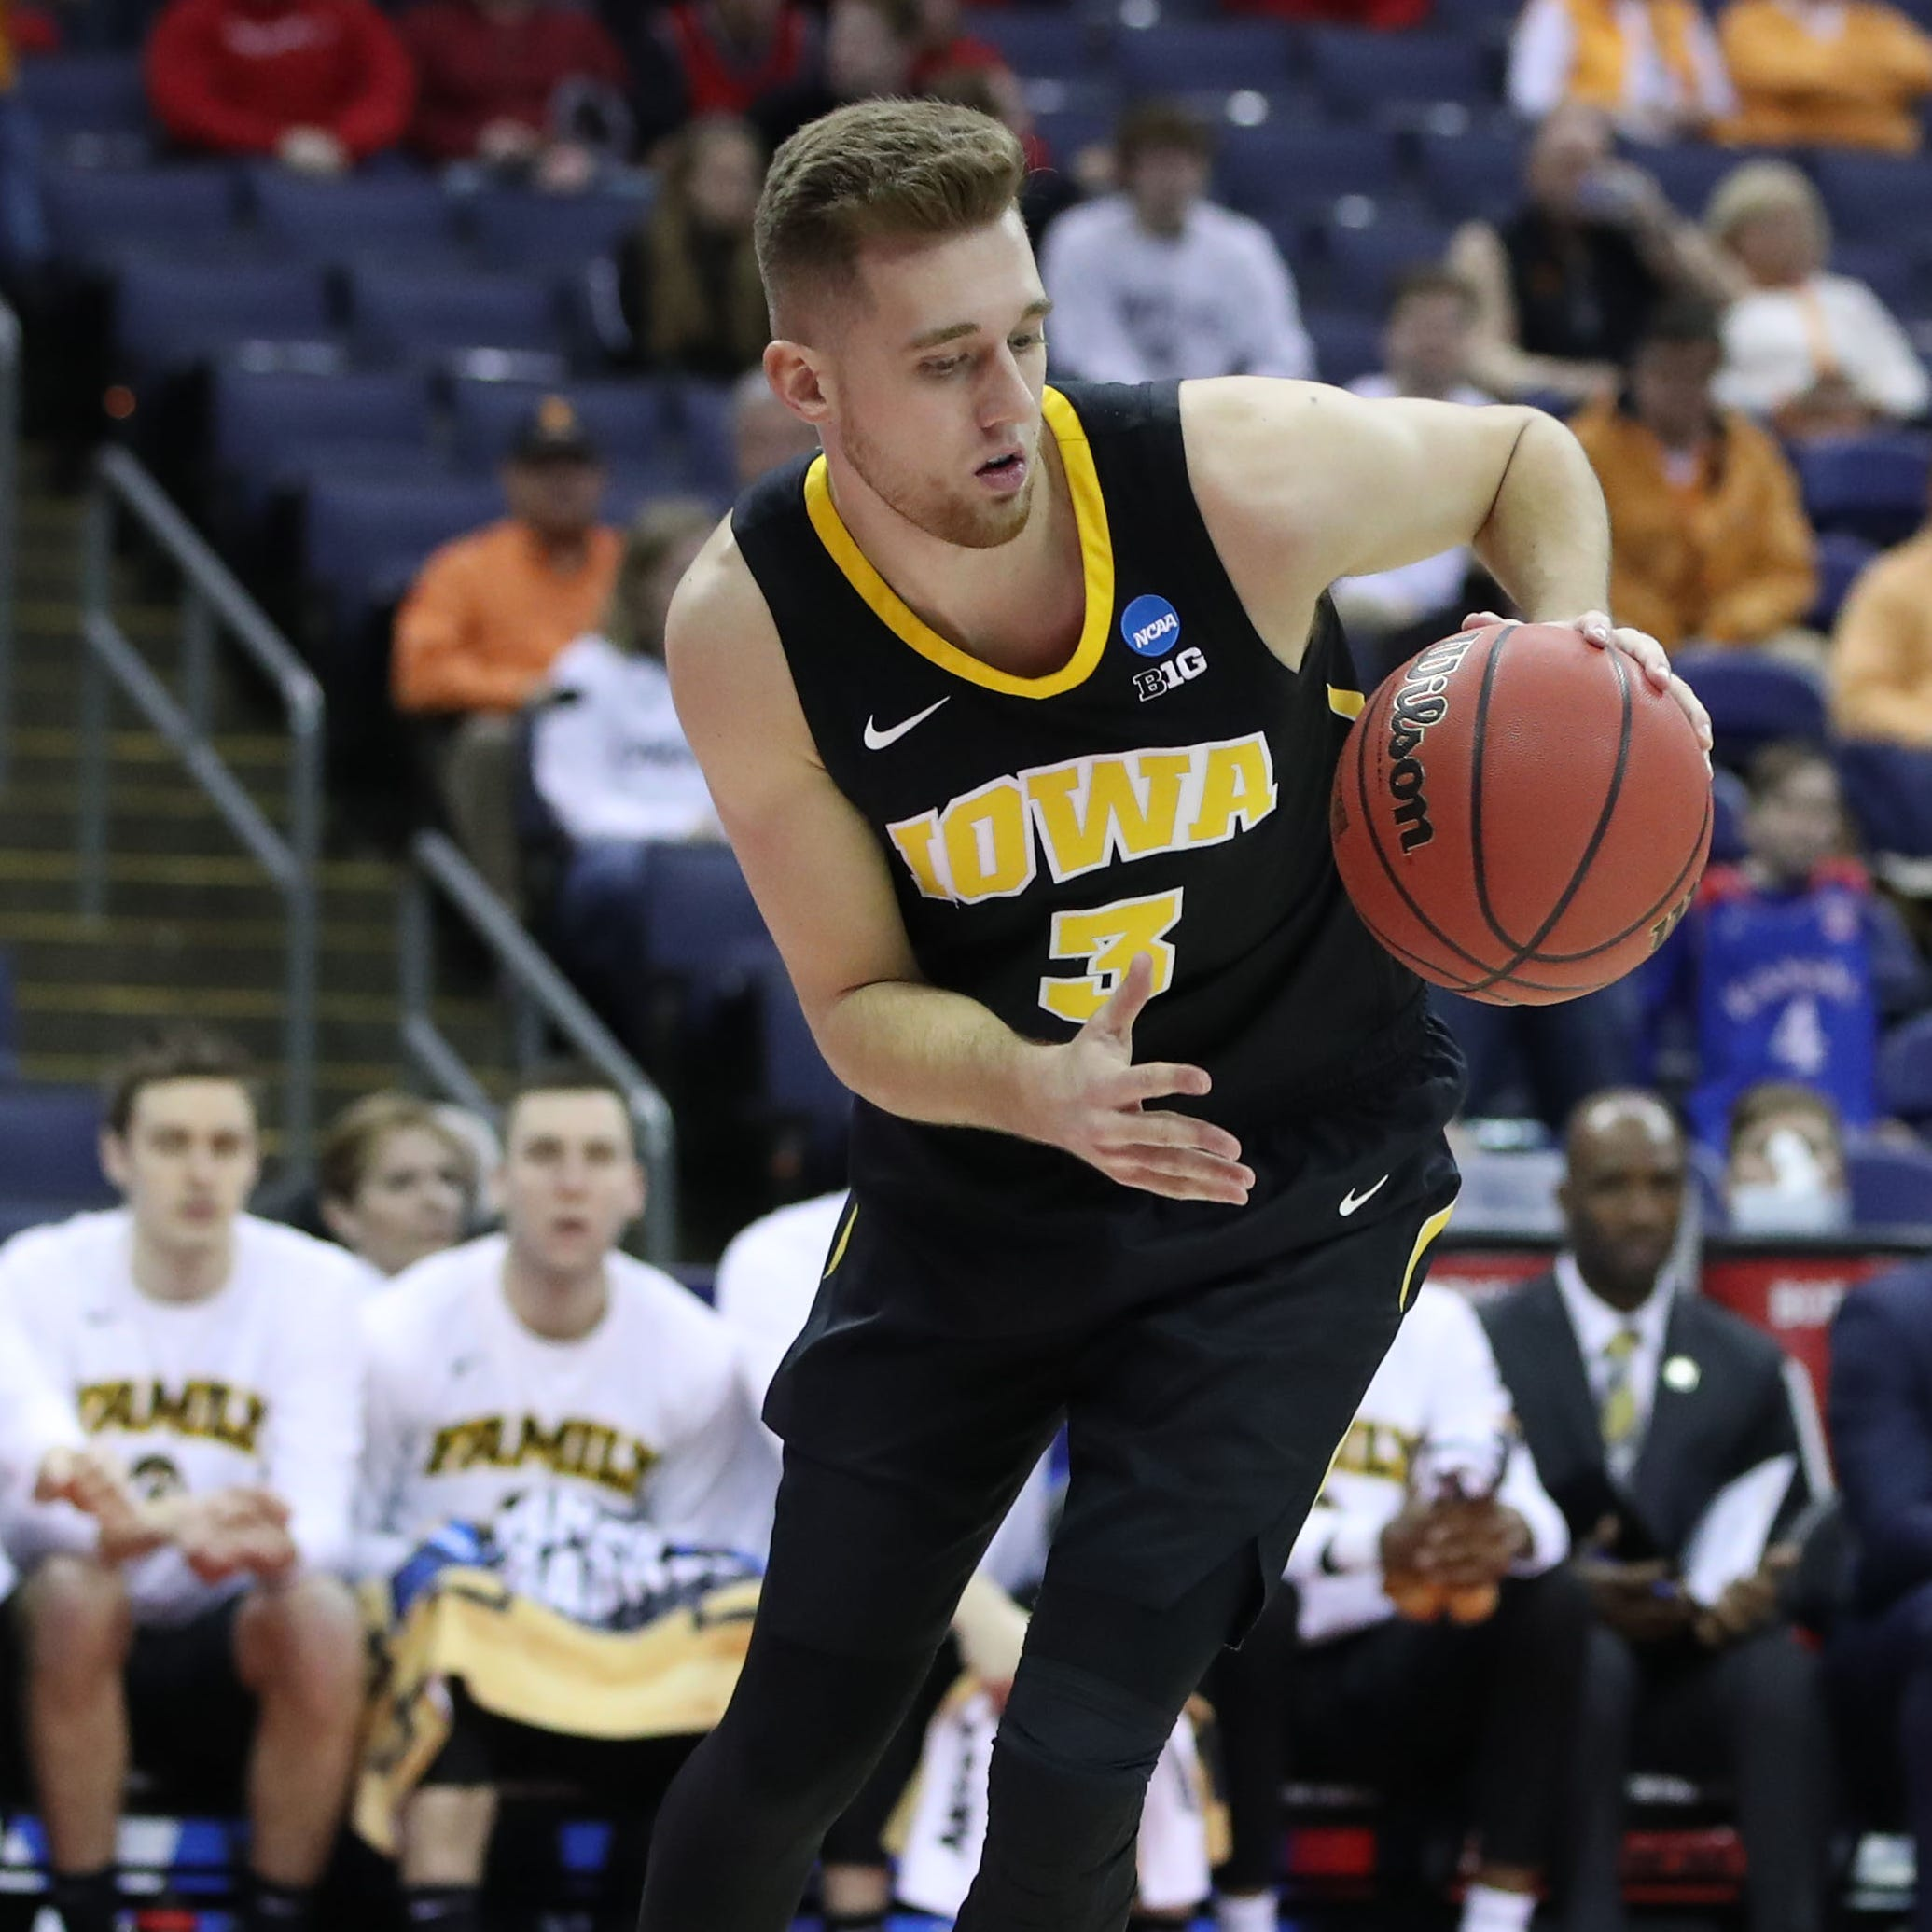 The one, meaningful word Iowa's Jordan Bohannon writes on his basketball shoes